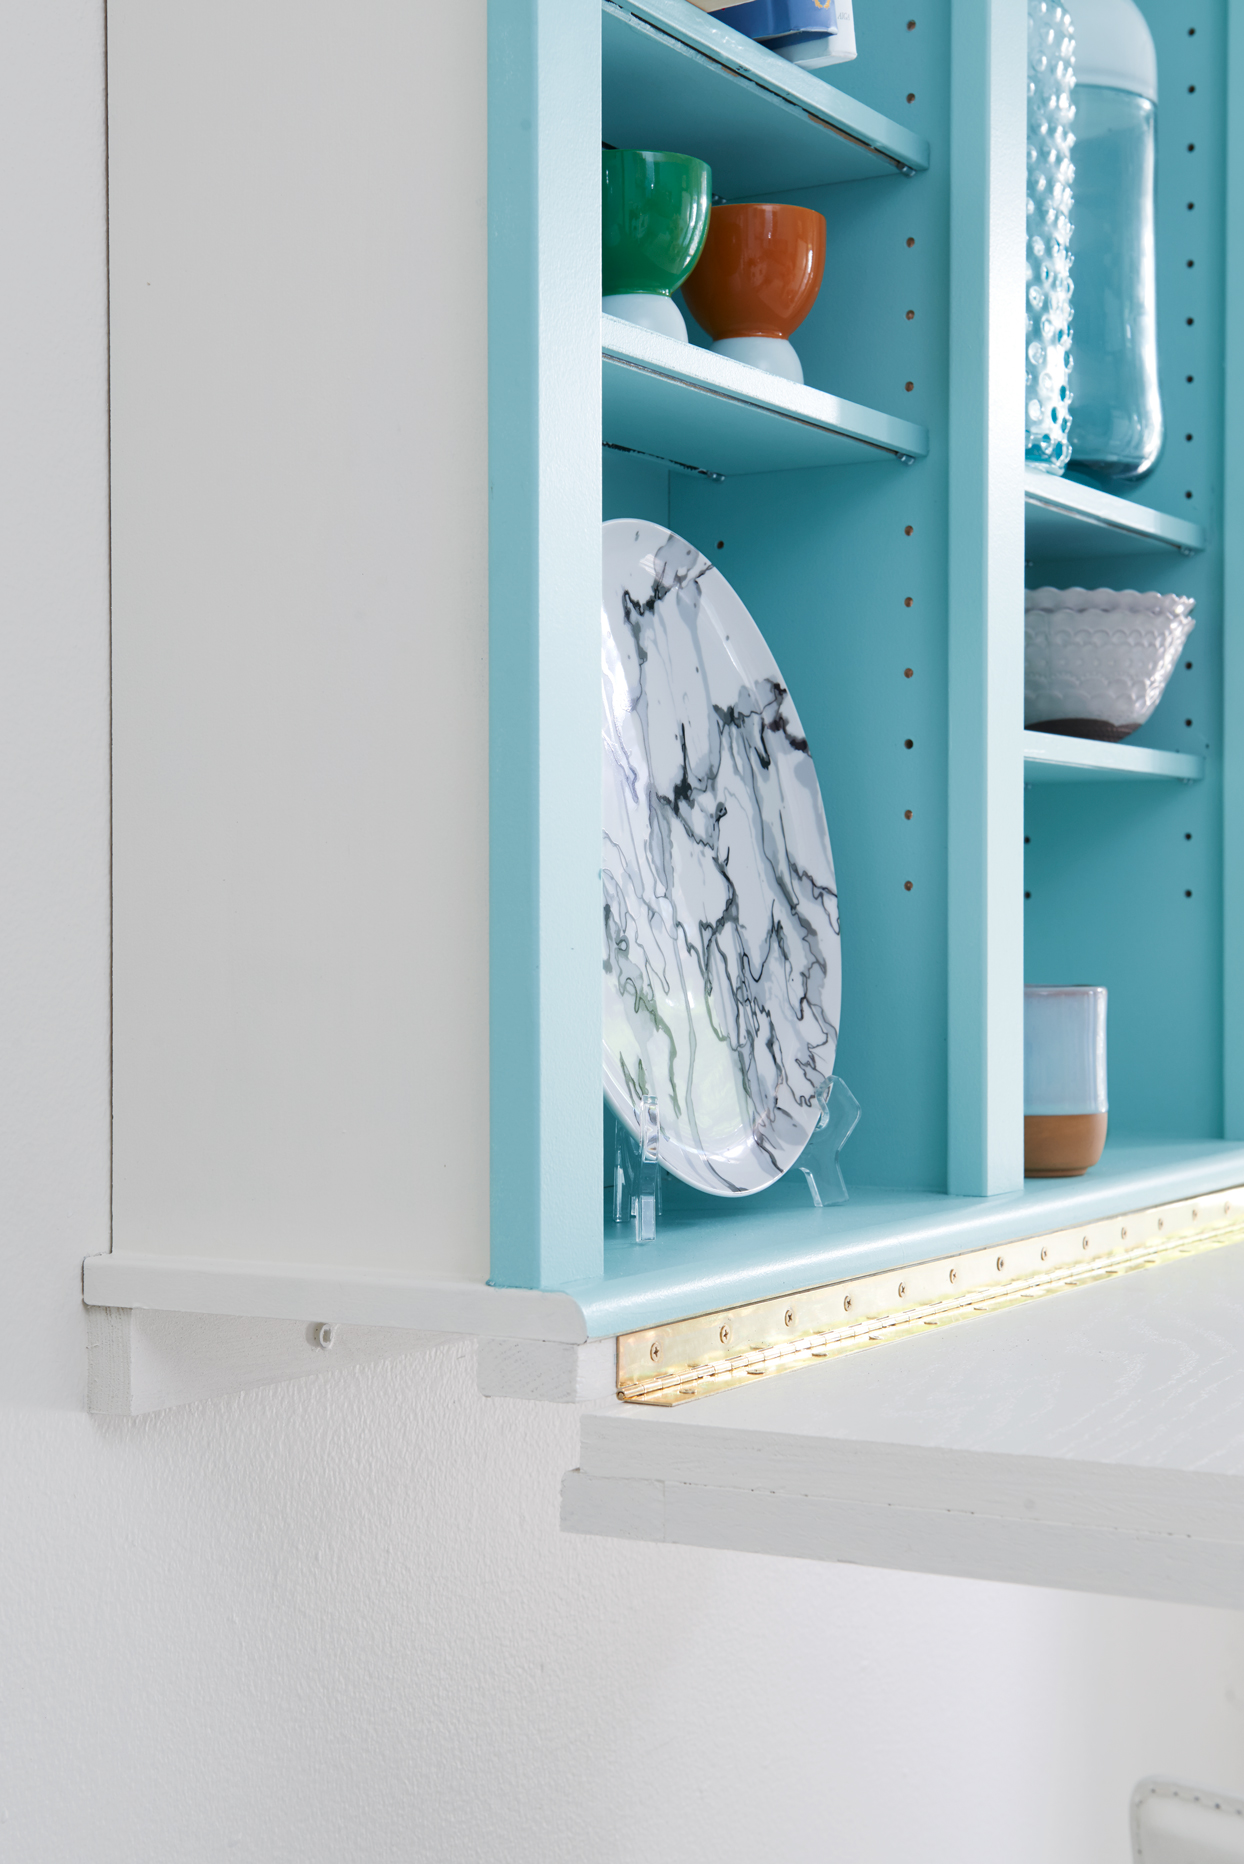 Open blue cabinets with dishes